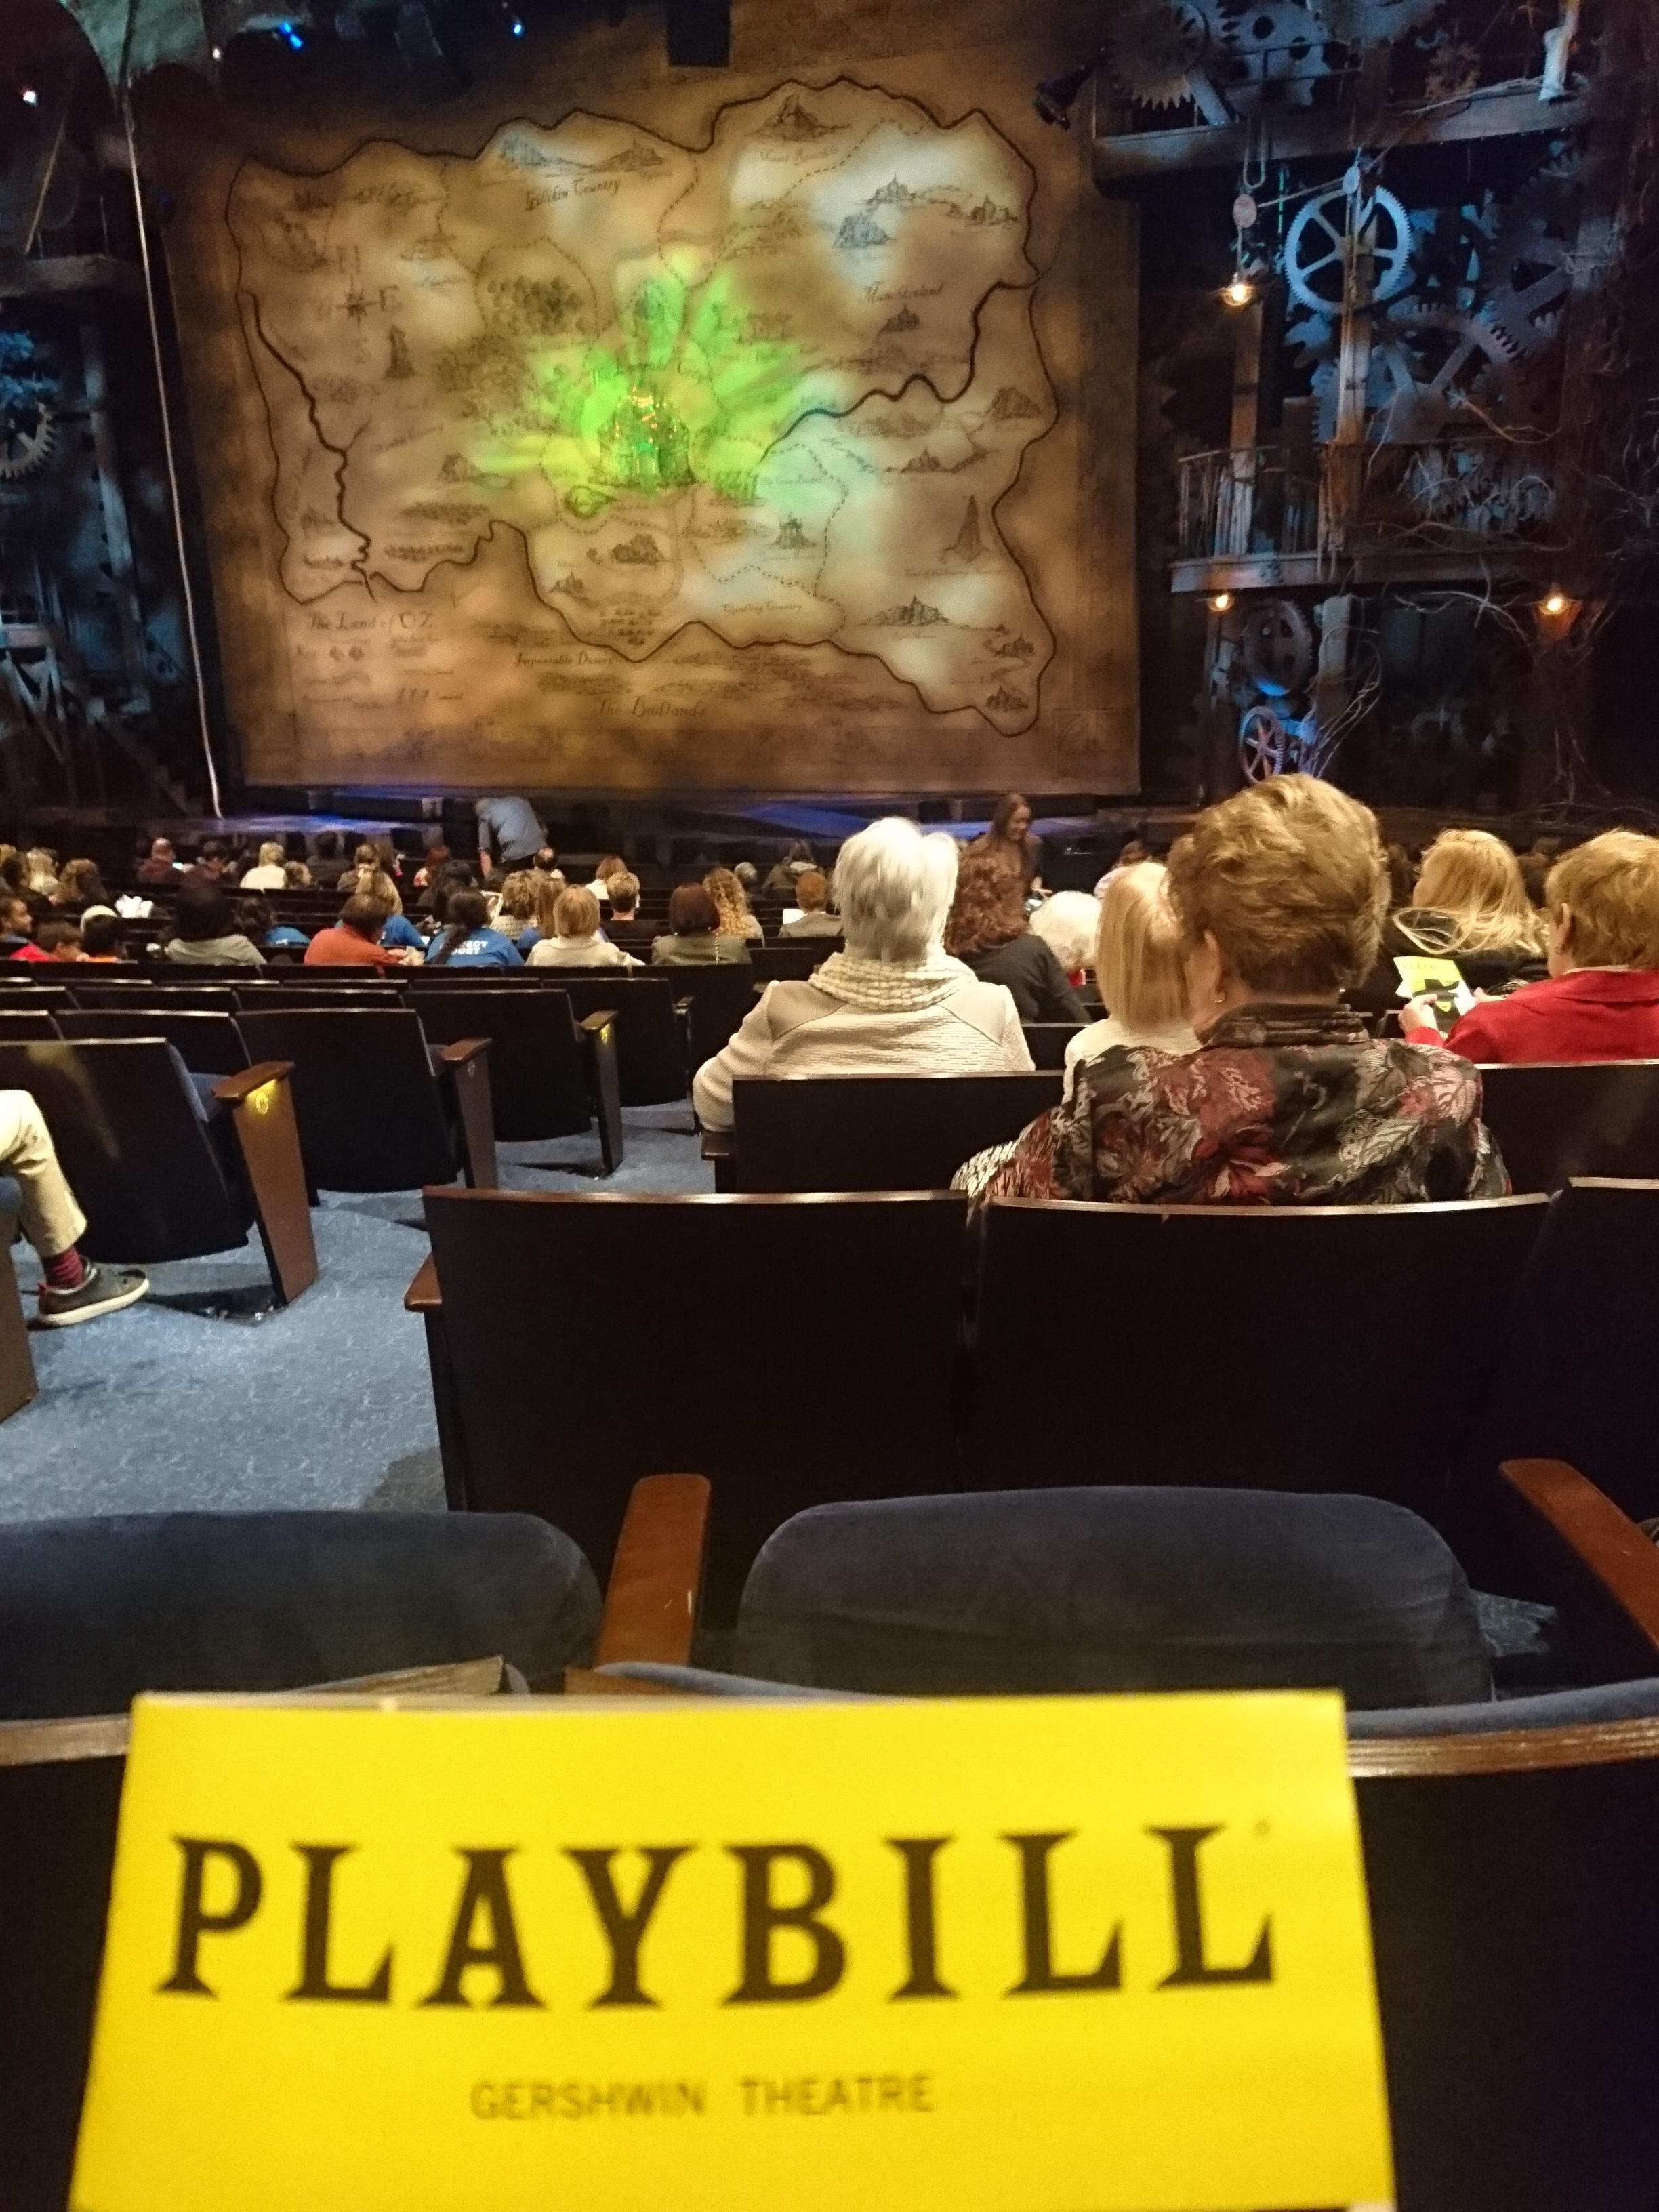 Gershwin Theatre Section Orchestra R Row M Seat 4